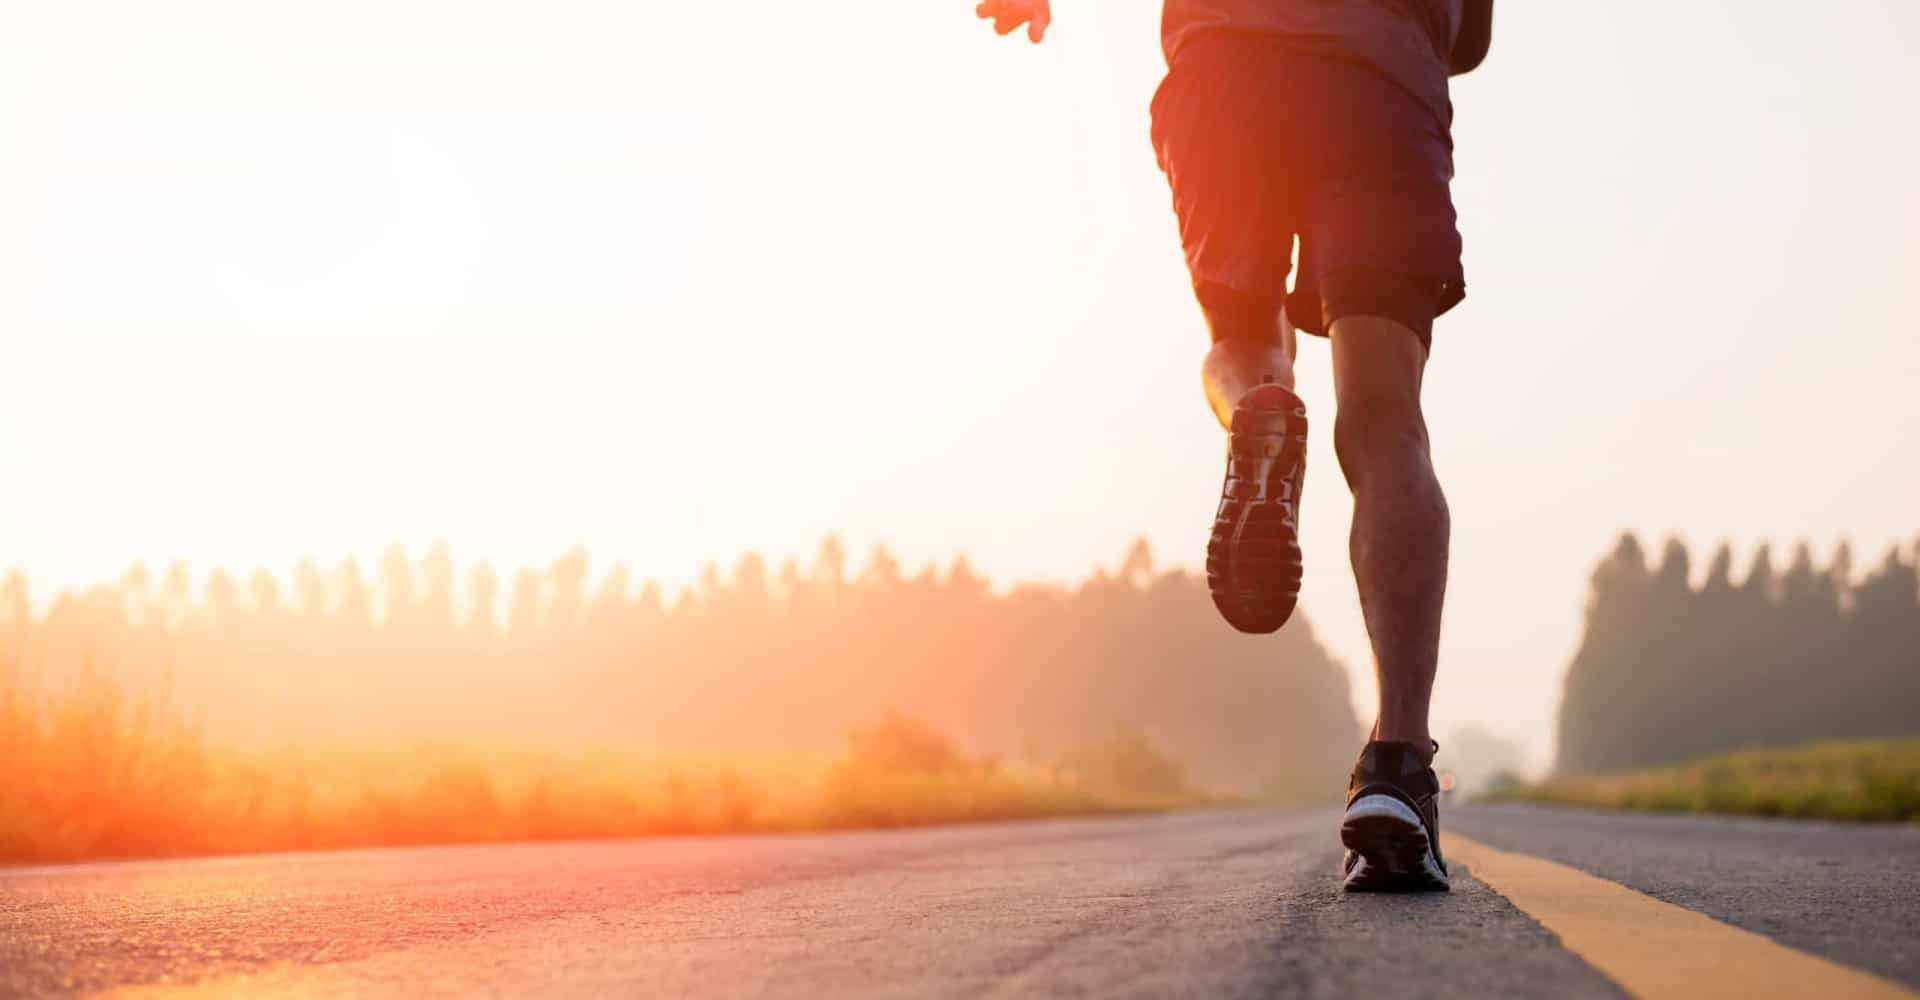 10 lesser-known benefits of running